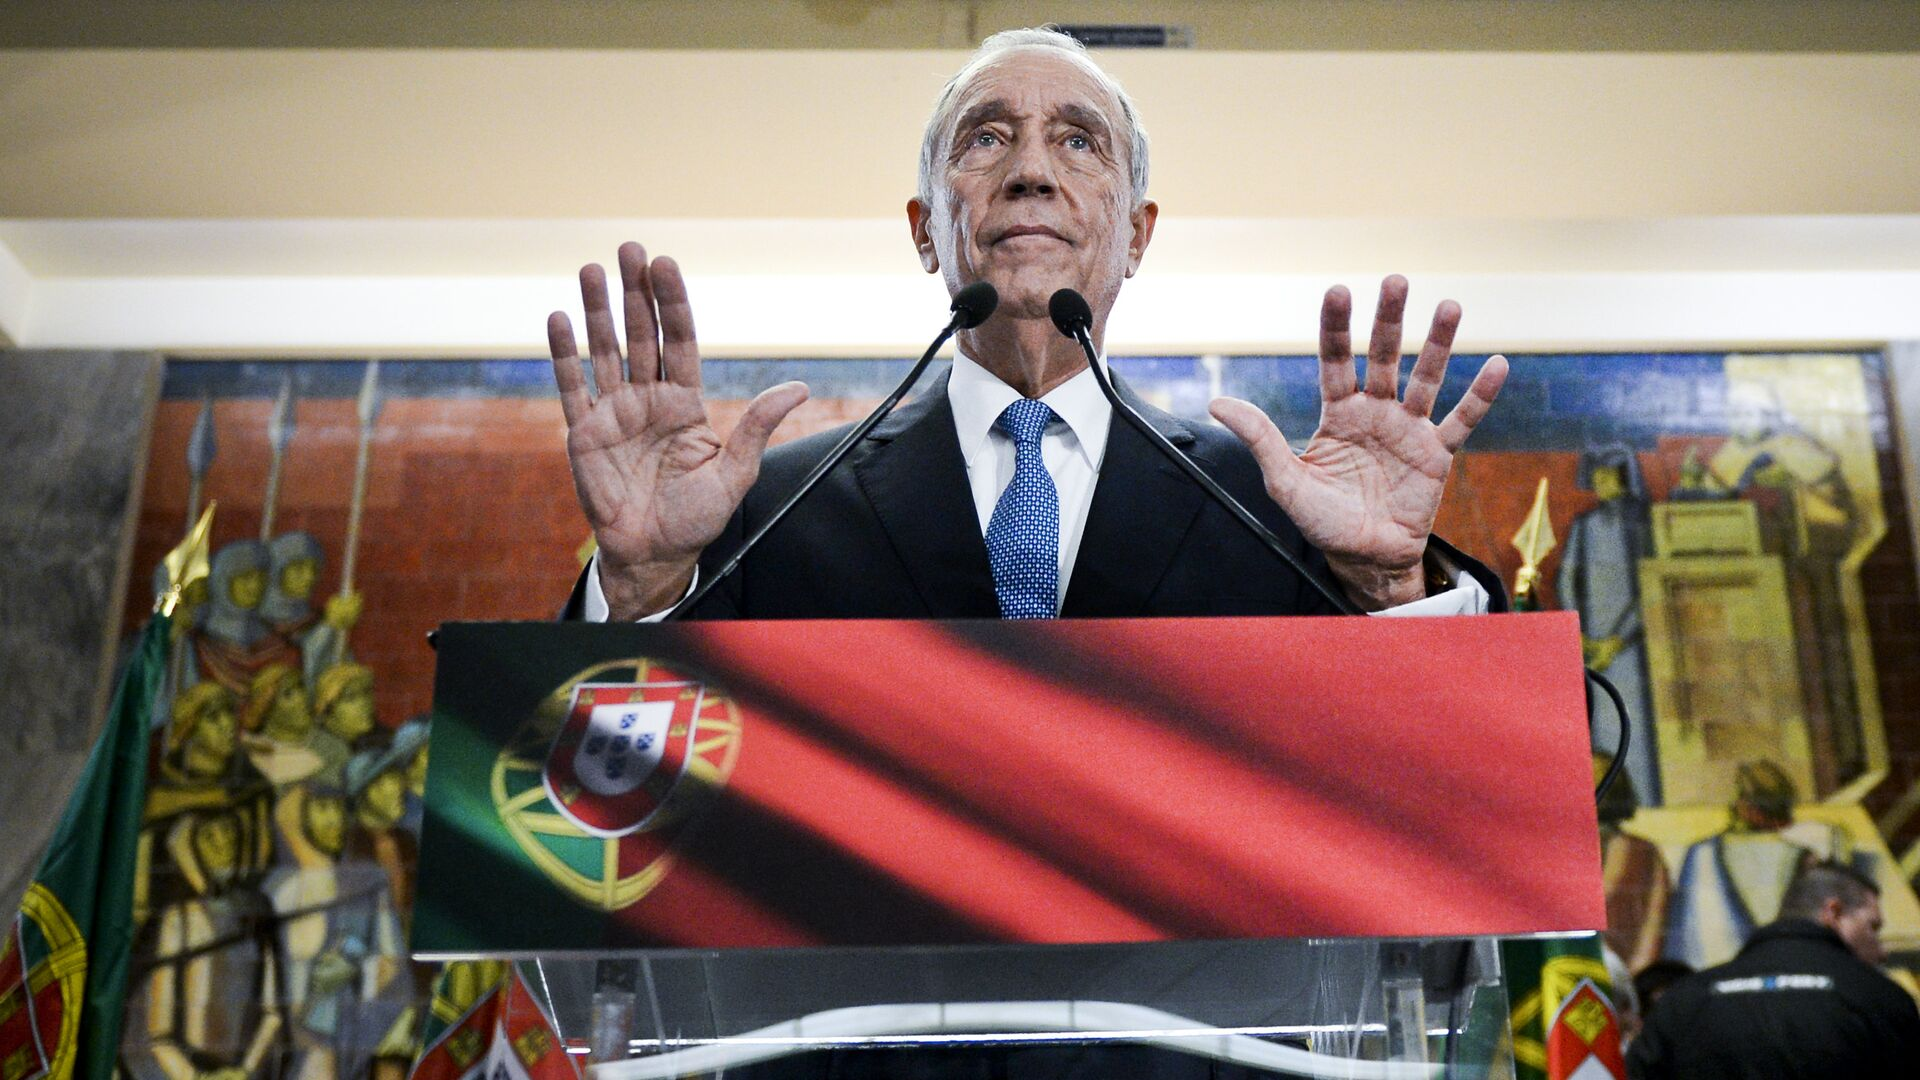 Marcelo Rebelo de Sousa gestures as he delivers a speech after winning the Portugal's Presidencial Election in Lisbon on January 24, 2016 - Sputnik Italia, 1920, 22.09.2021